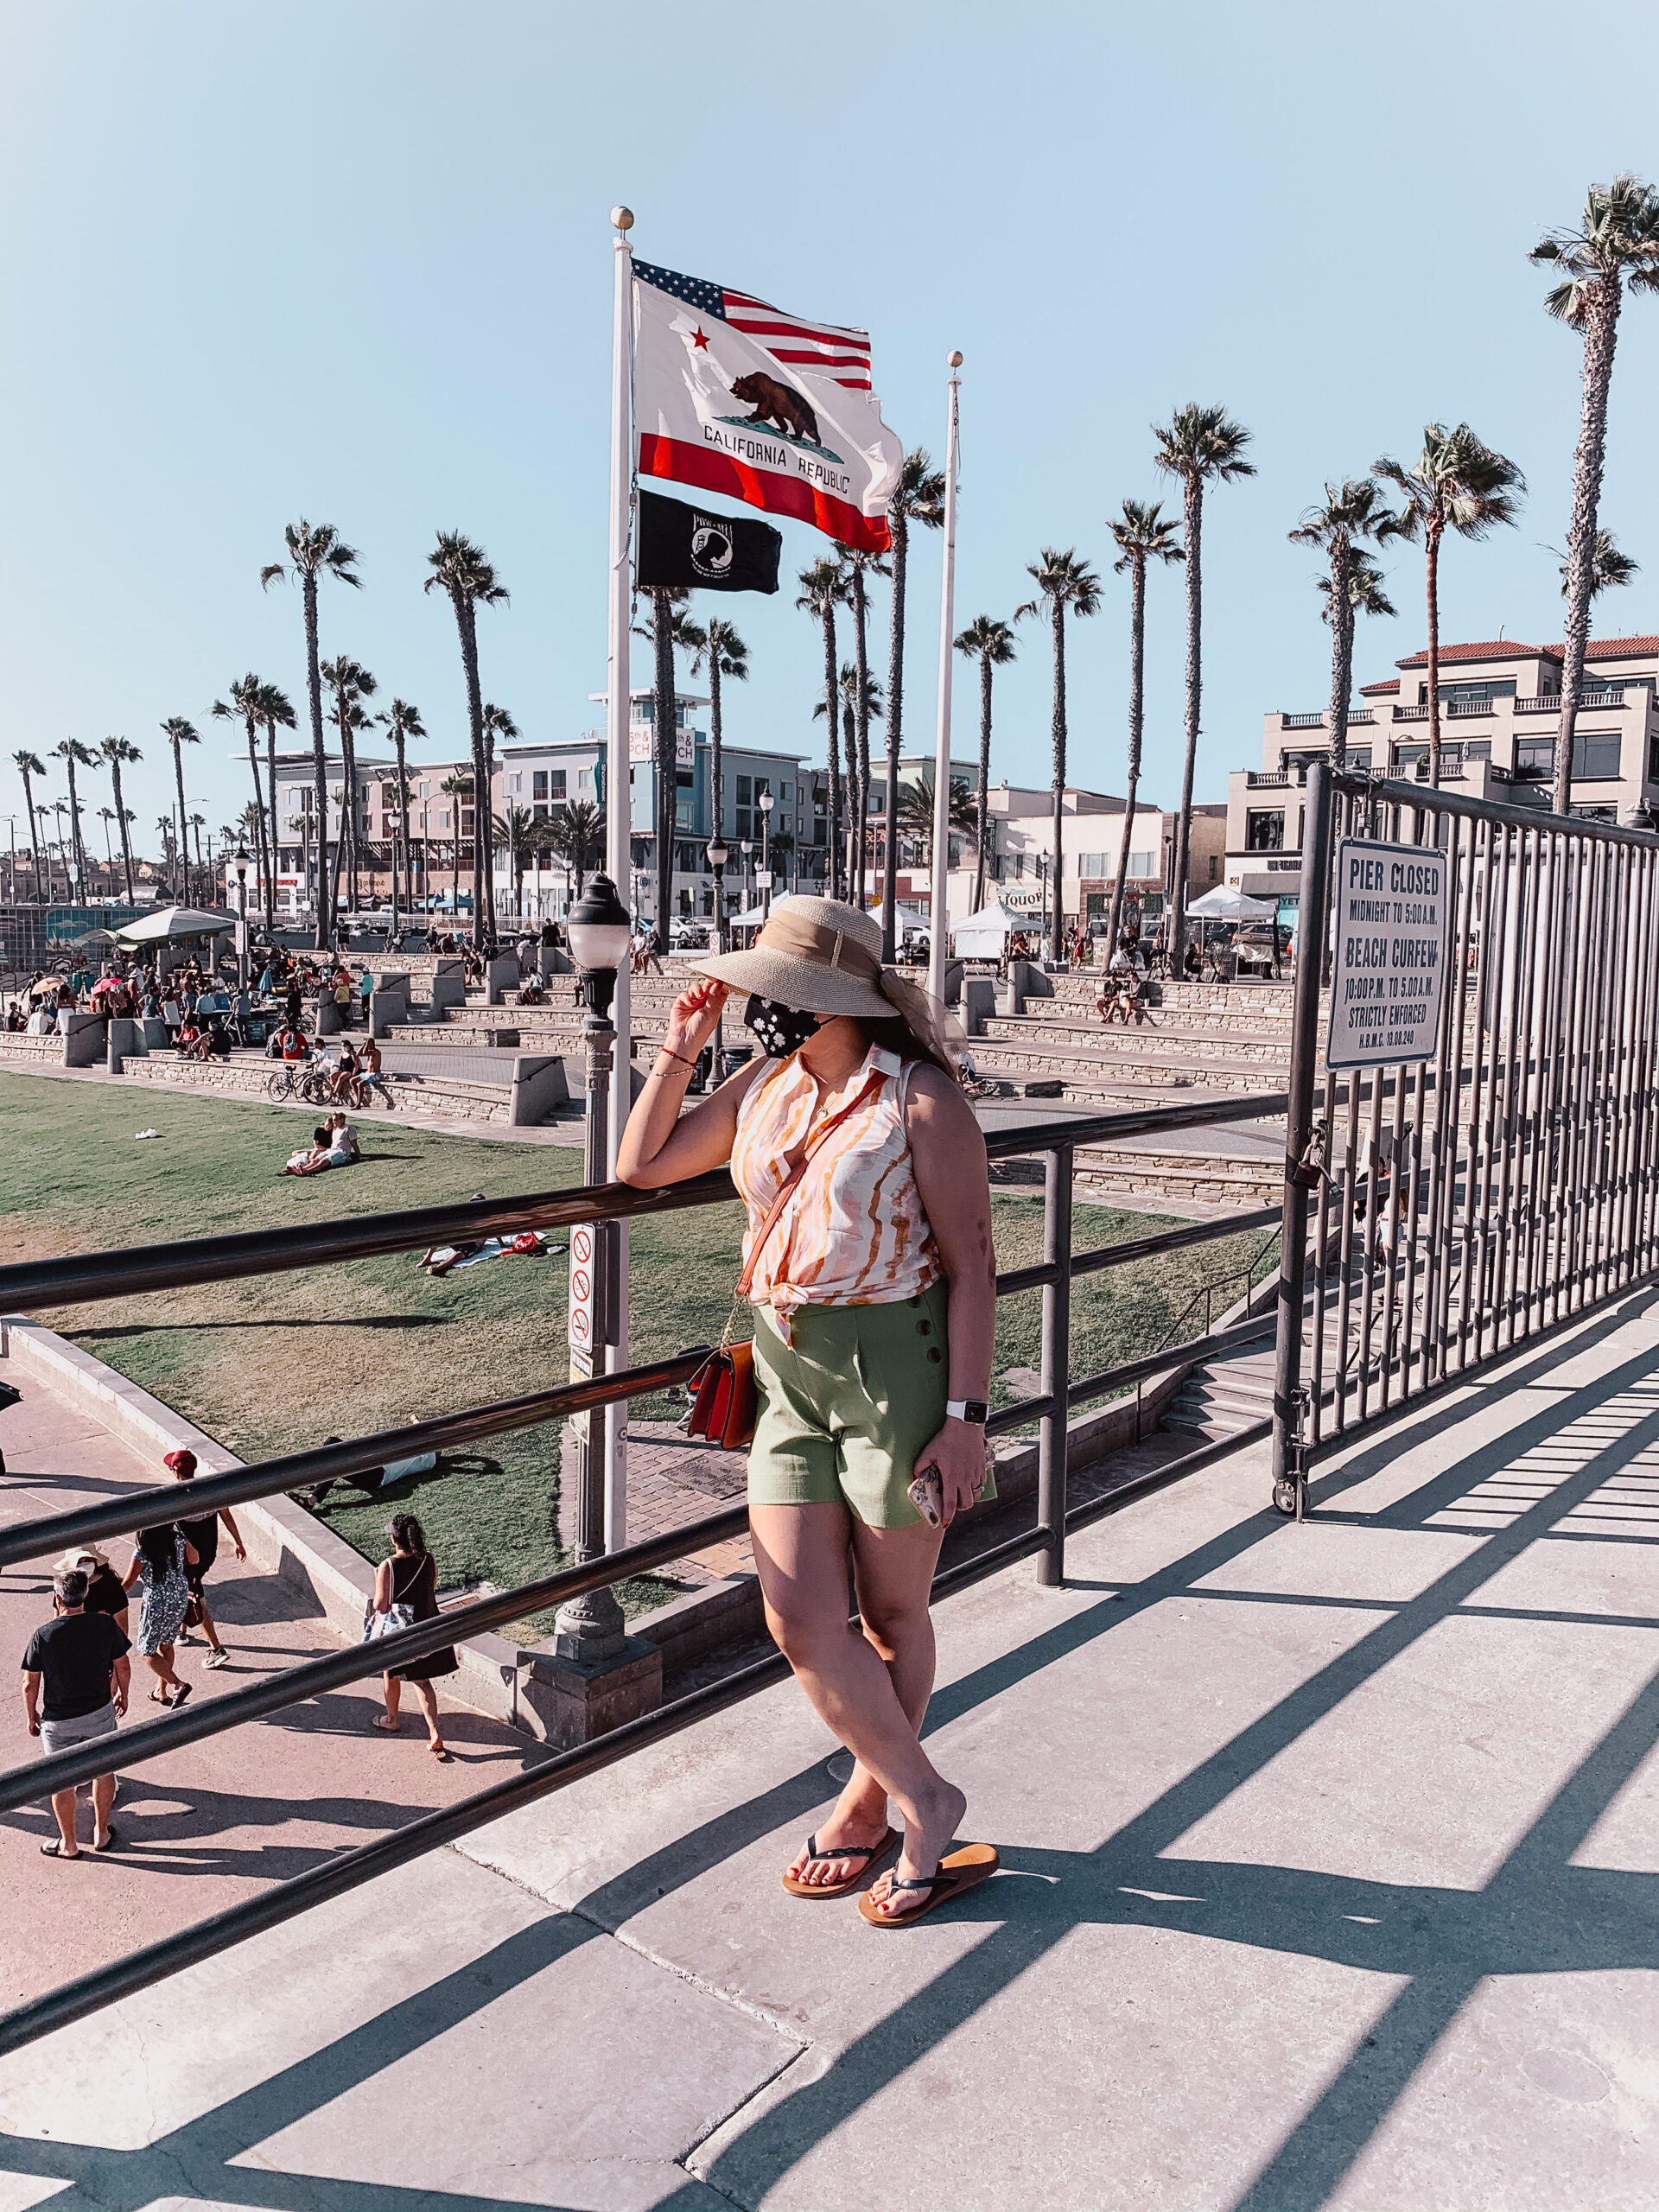 pslilyboutique-on-instagram-summer-2020-outfit-ideas-huntington-beach-pier-california-IMG_1095